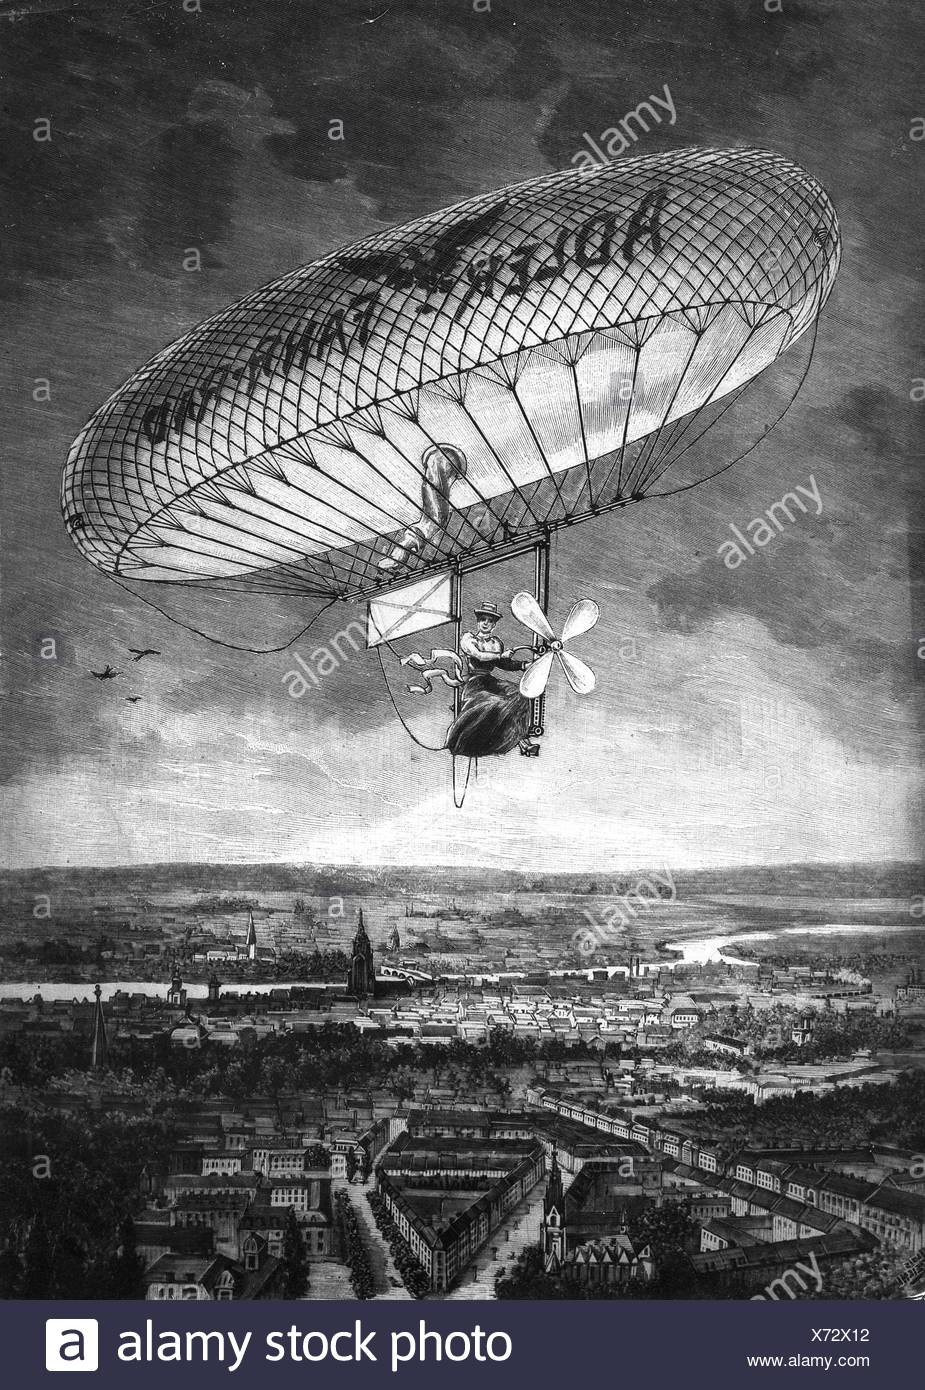 Paulus, Kaethe, 22.12.1868 - 31.7.1935, German aeronaut, half length, in balloon driven like a bicycle above Frankfurt, after sketch by A.Reichl, wood engraving, 1898, Additional-Rights-Clearances-NA - Stock Image